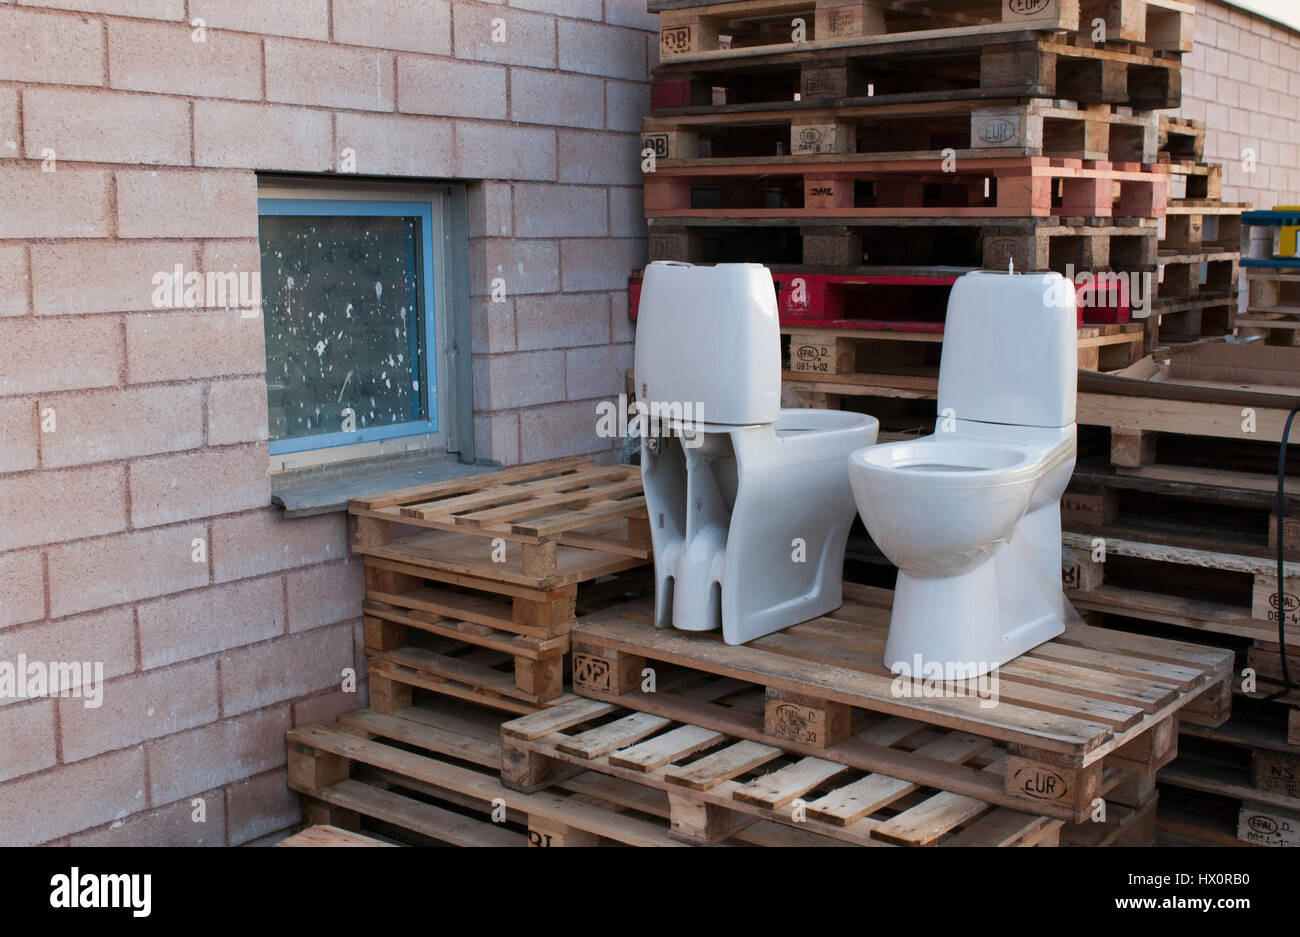 Two toilets including pallets, Upplands Väsby, Sweden. - Stock Image